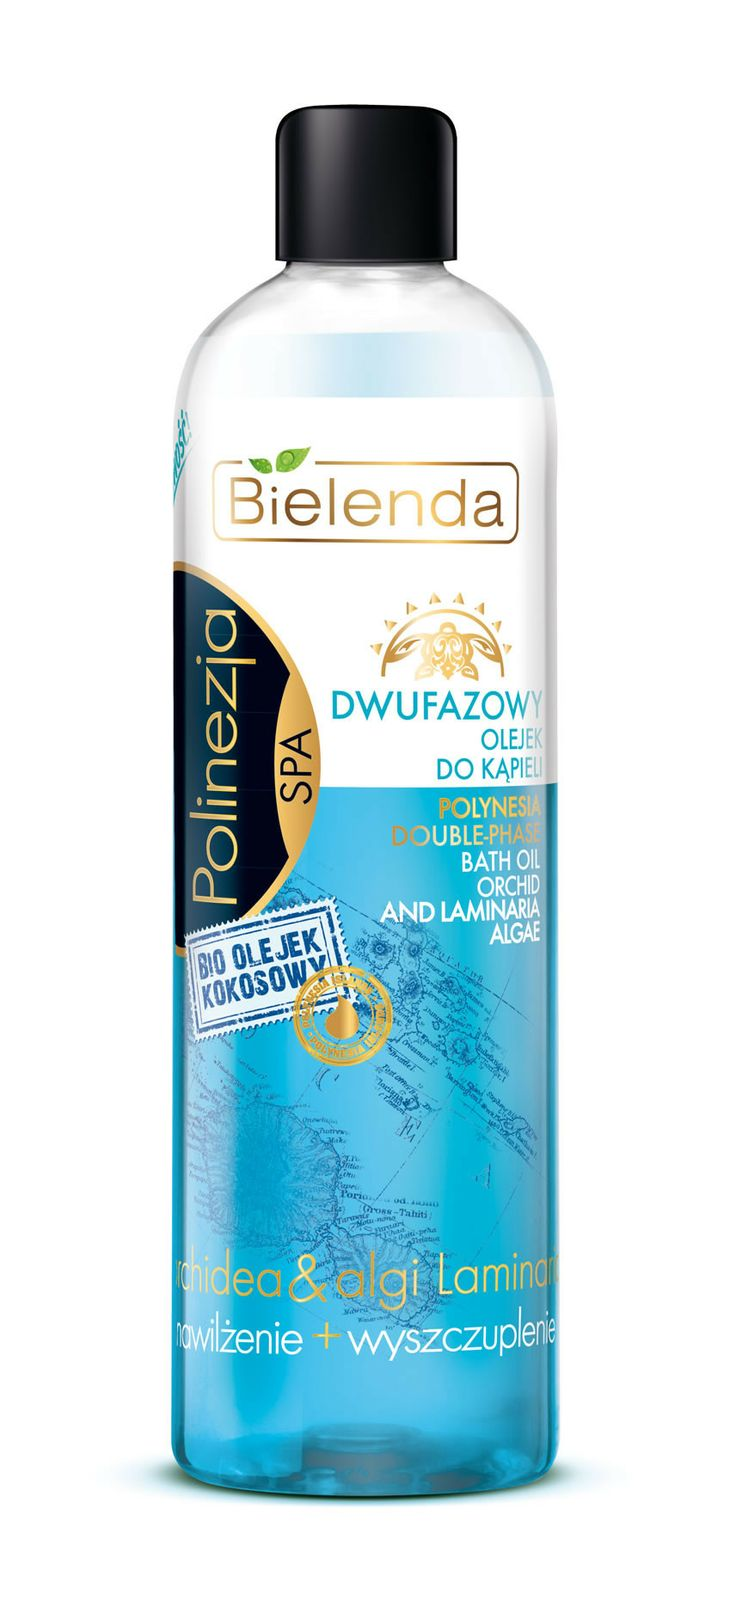 Bielenda POLYNESIA double-phase bath oil 400 ml BI194398 | Visagist